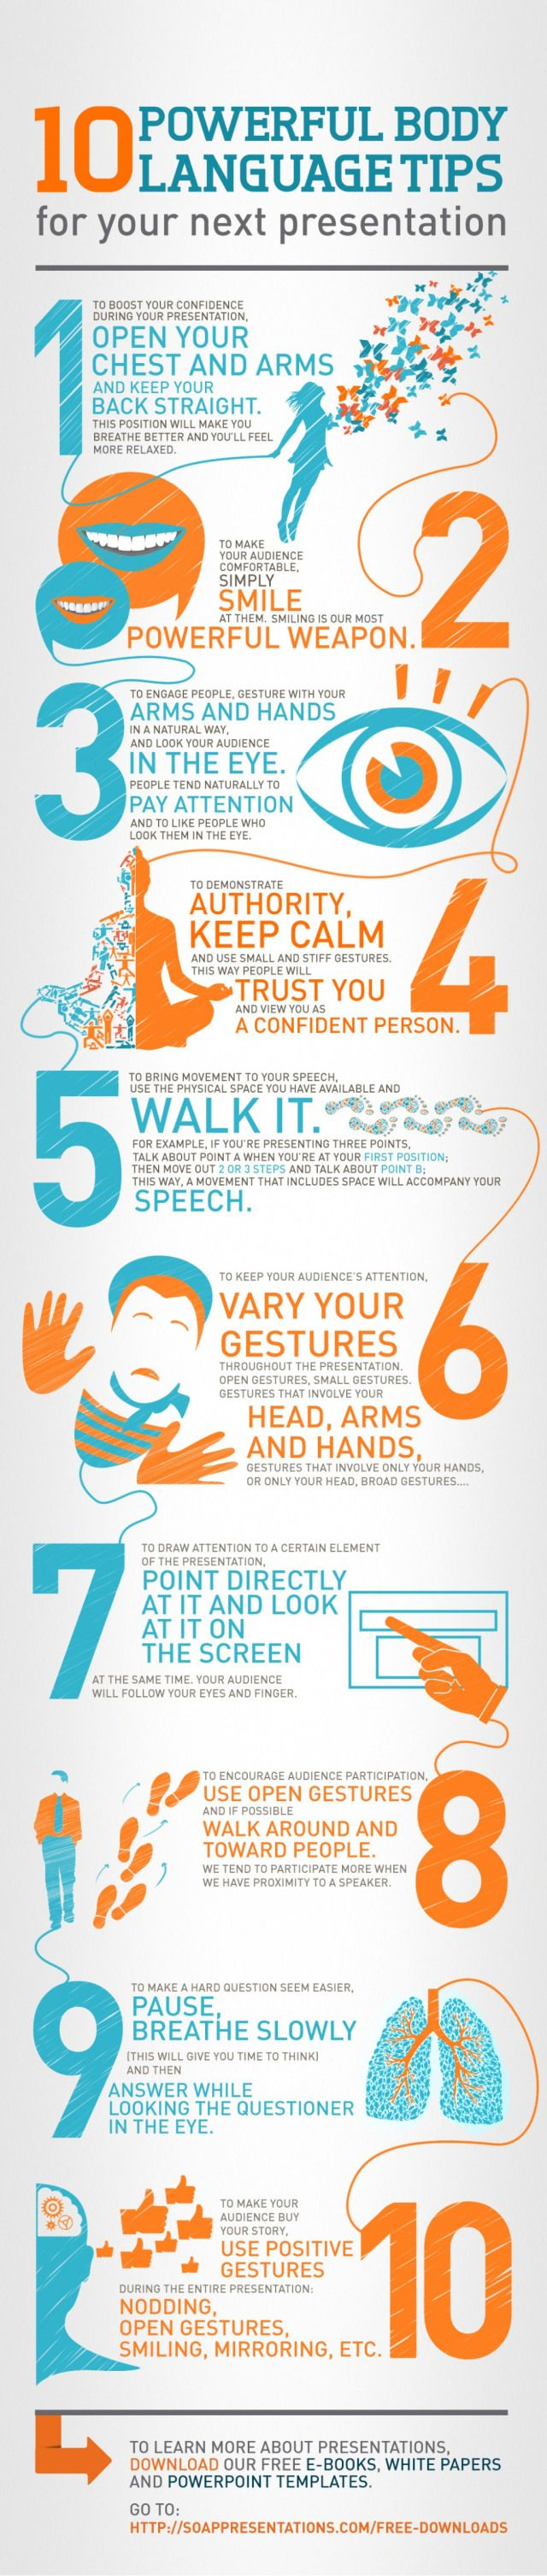 10 Great Body Language Tips for Your Next Presentation